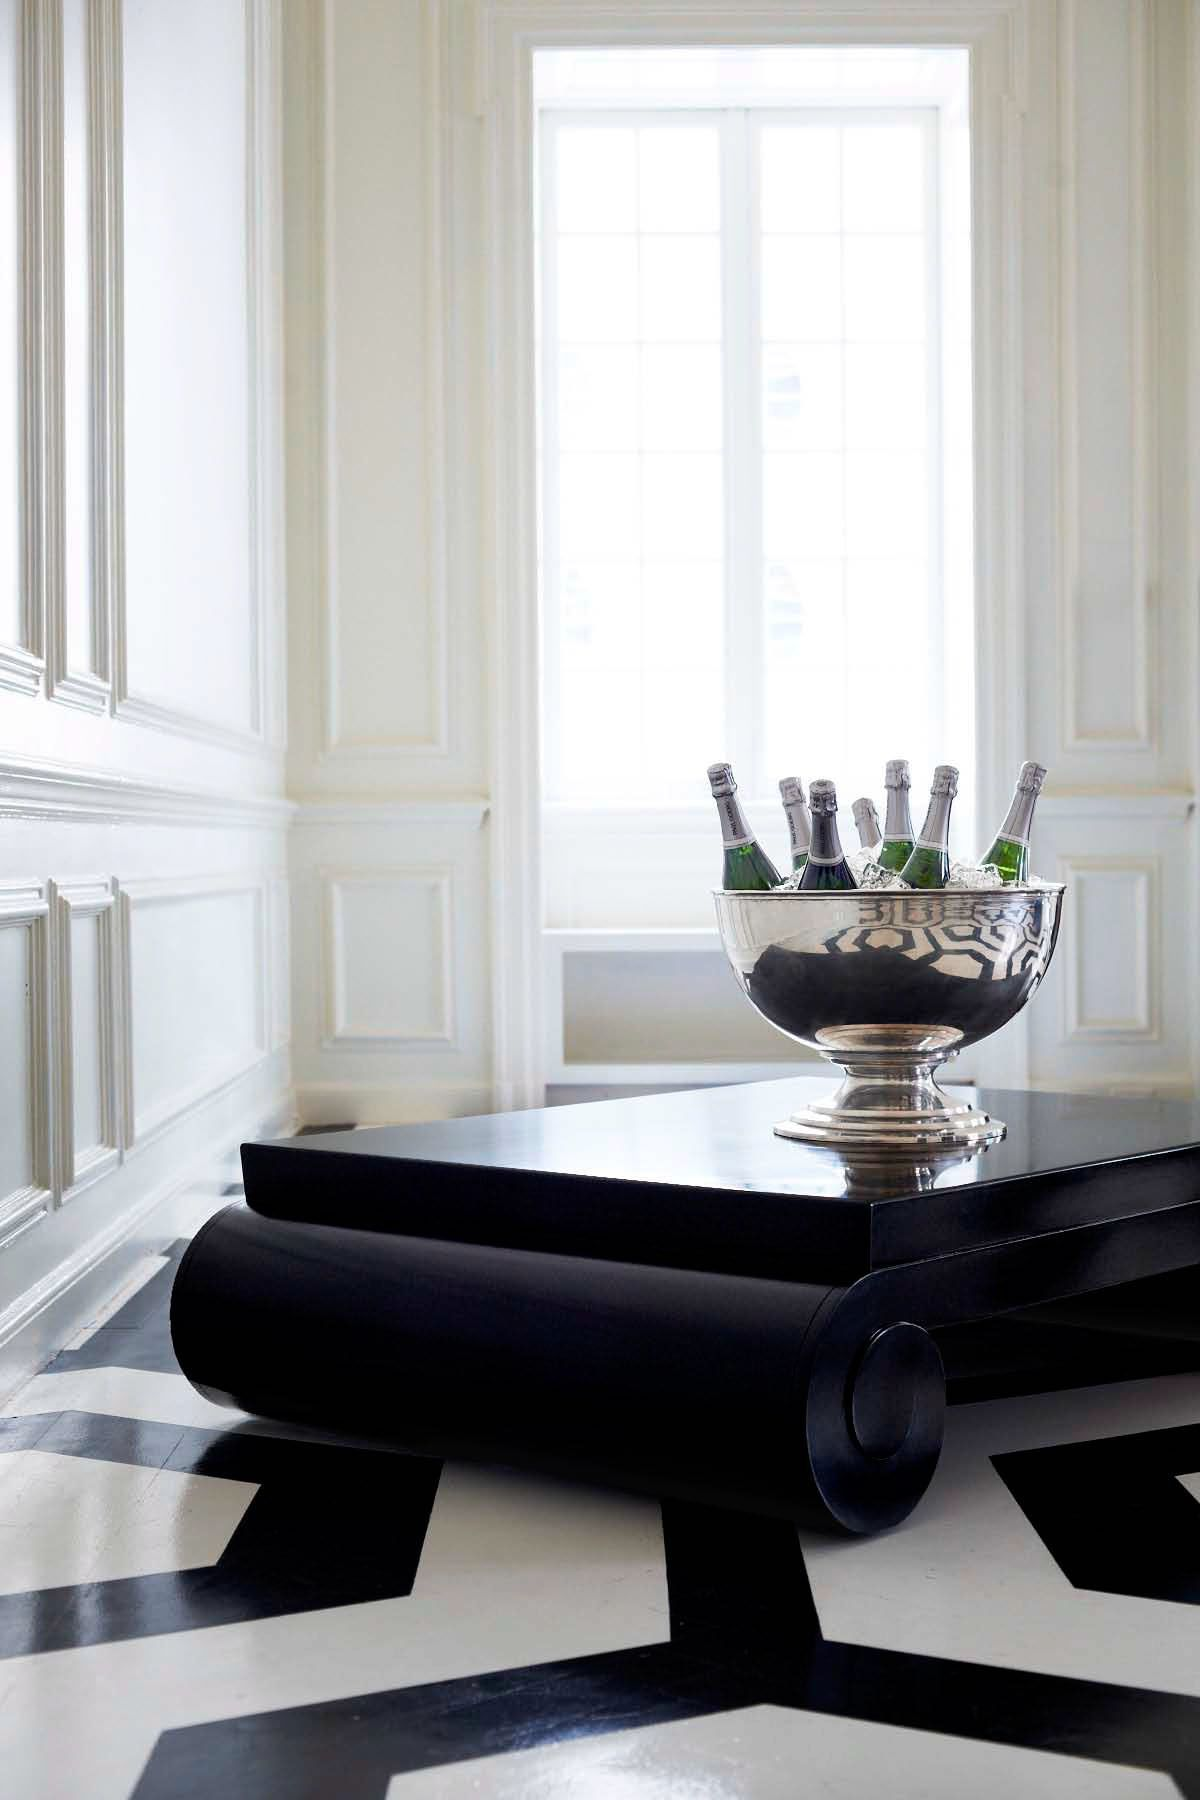 Ralph Lauren Homeu0027s Brook Street Cocktail Table, A Low, Black Coffee Table  With Dramatically Scaled Pillar Legs